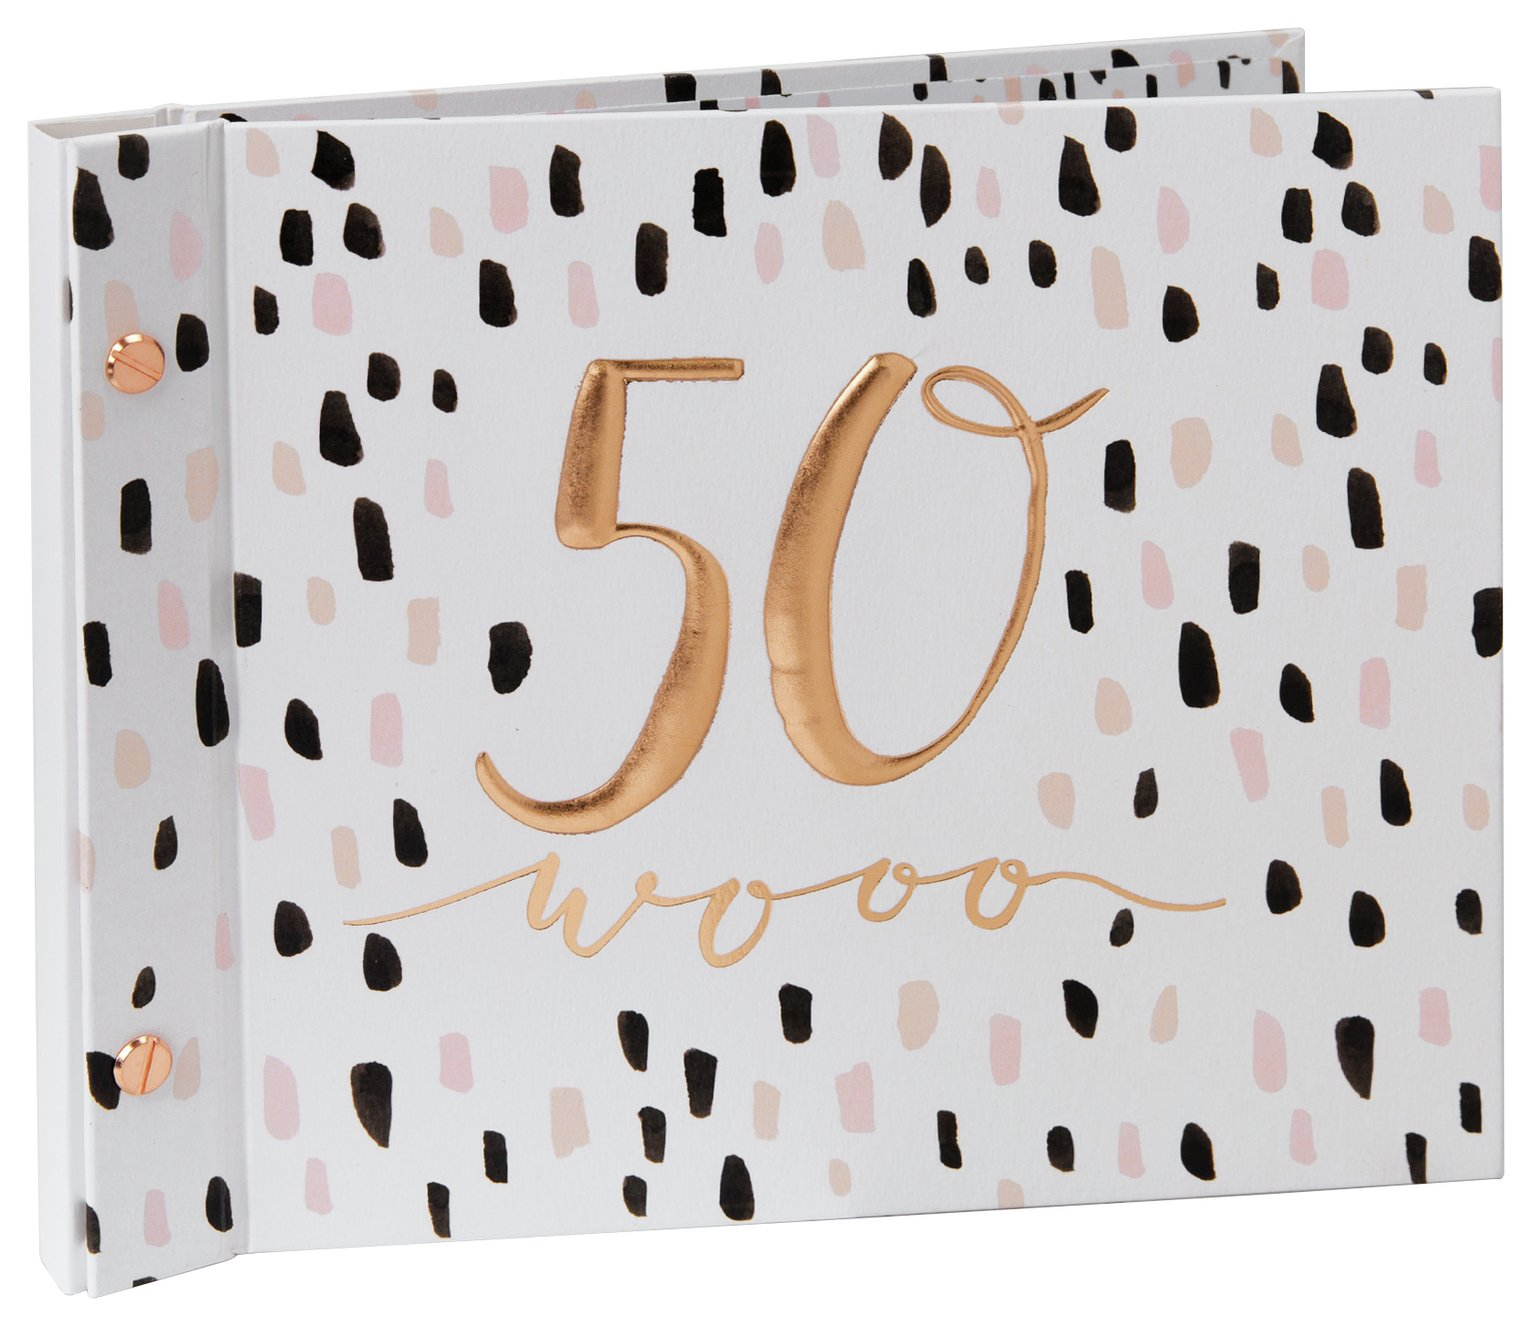 Hotchpotch Luxe 50th Birthday Guest & Photo Book